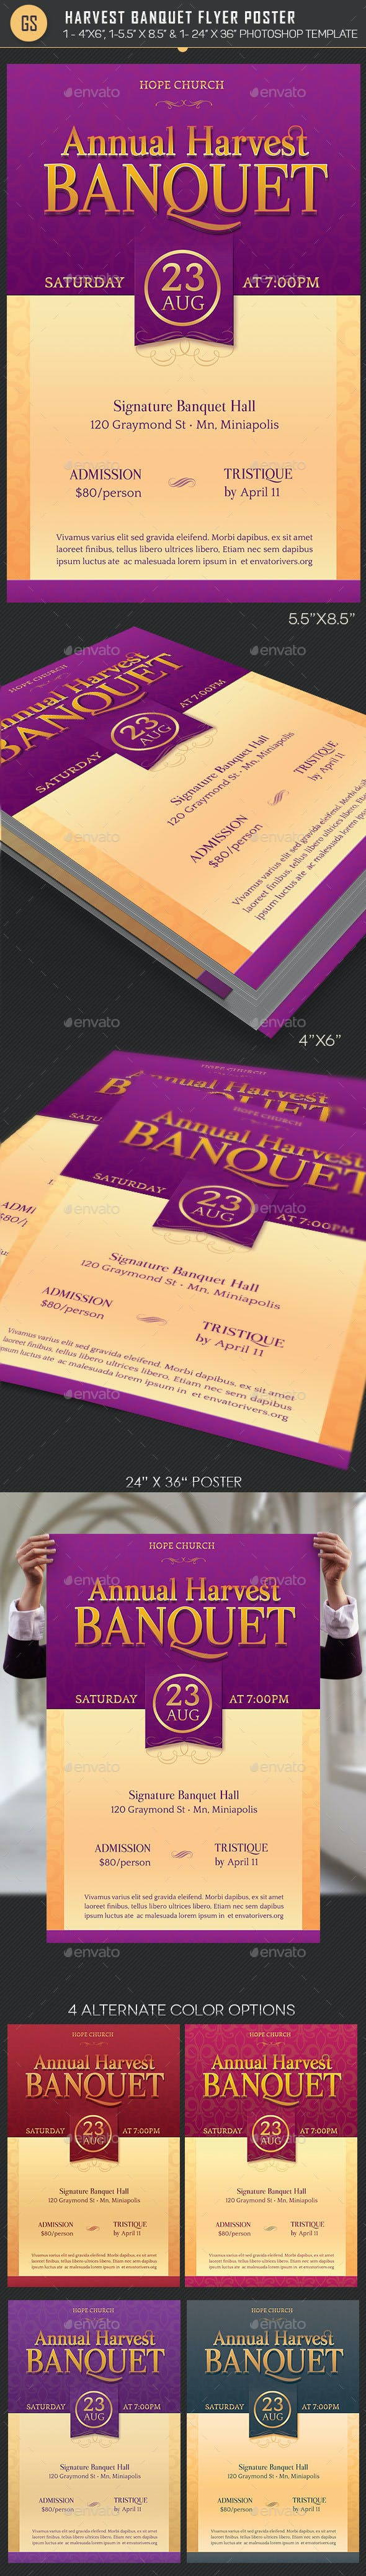 church harvest banquet flyer poster template by godserv2 graphicriver